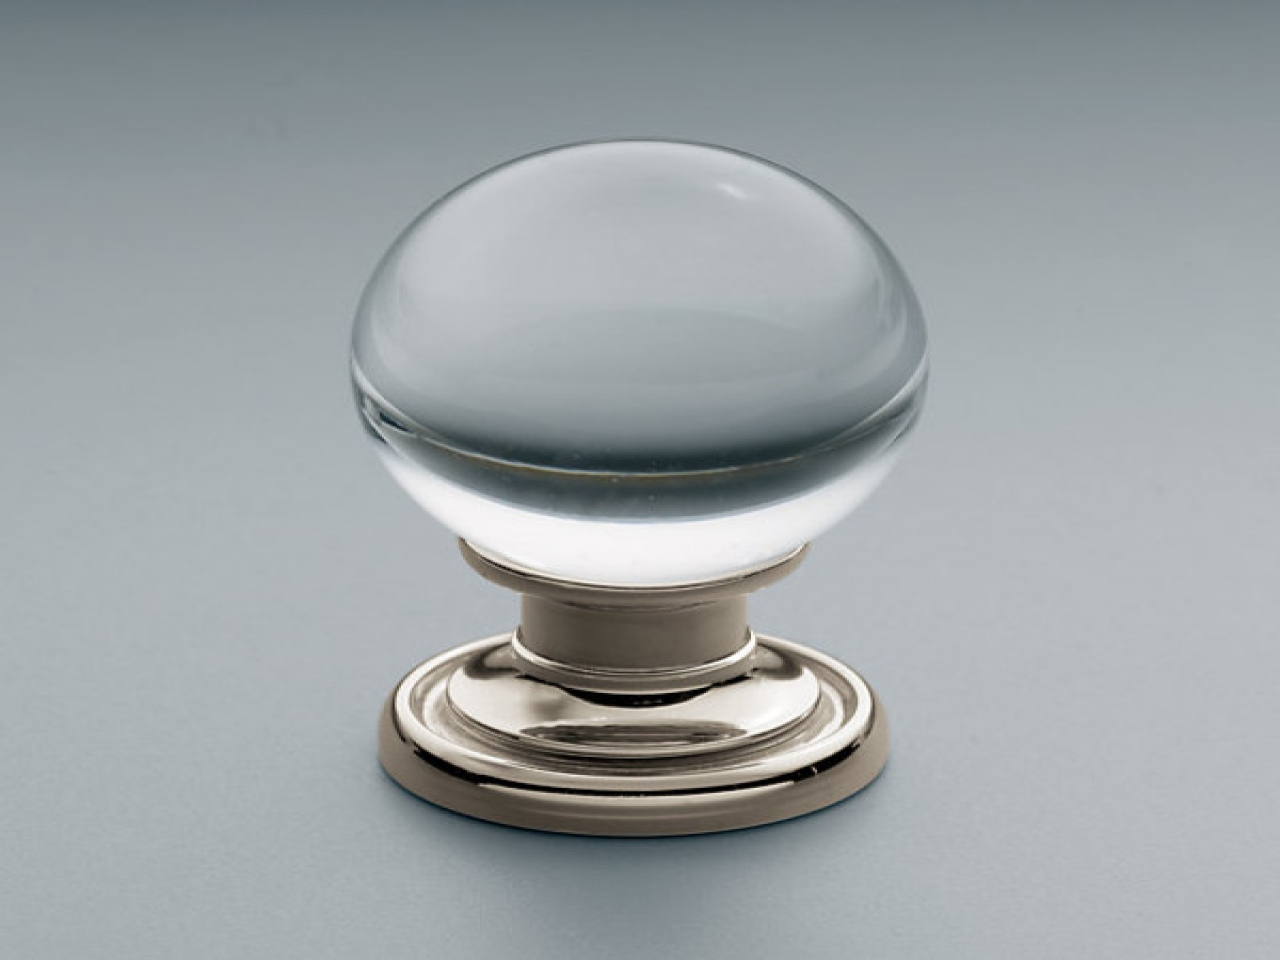 cabinet door knobs glass photo - 13